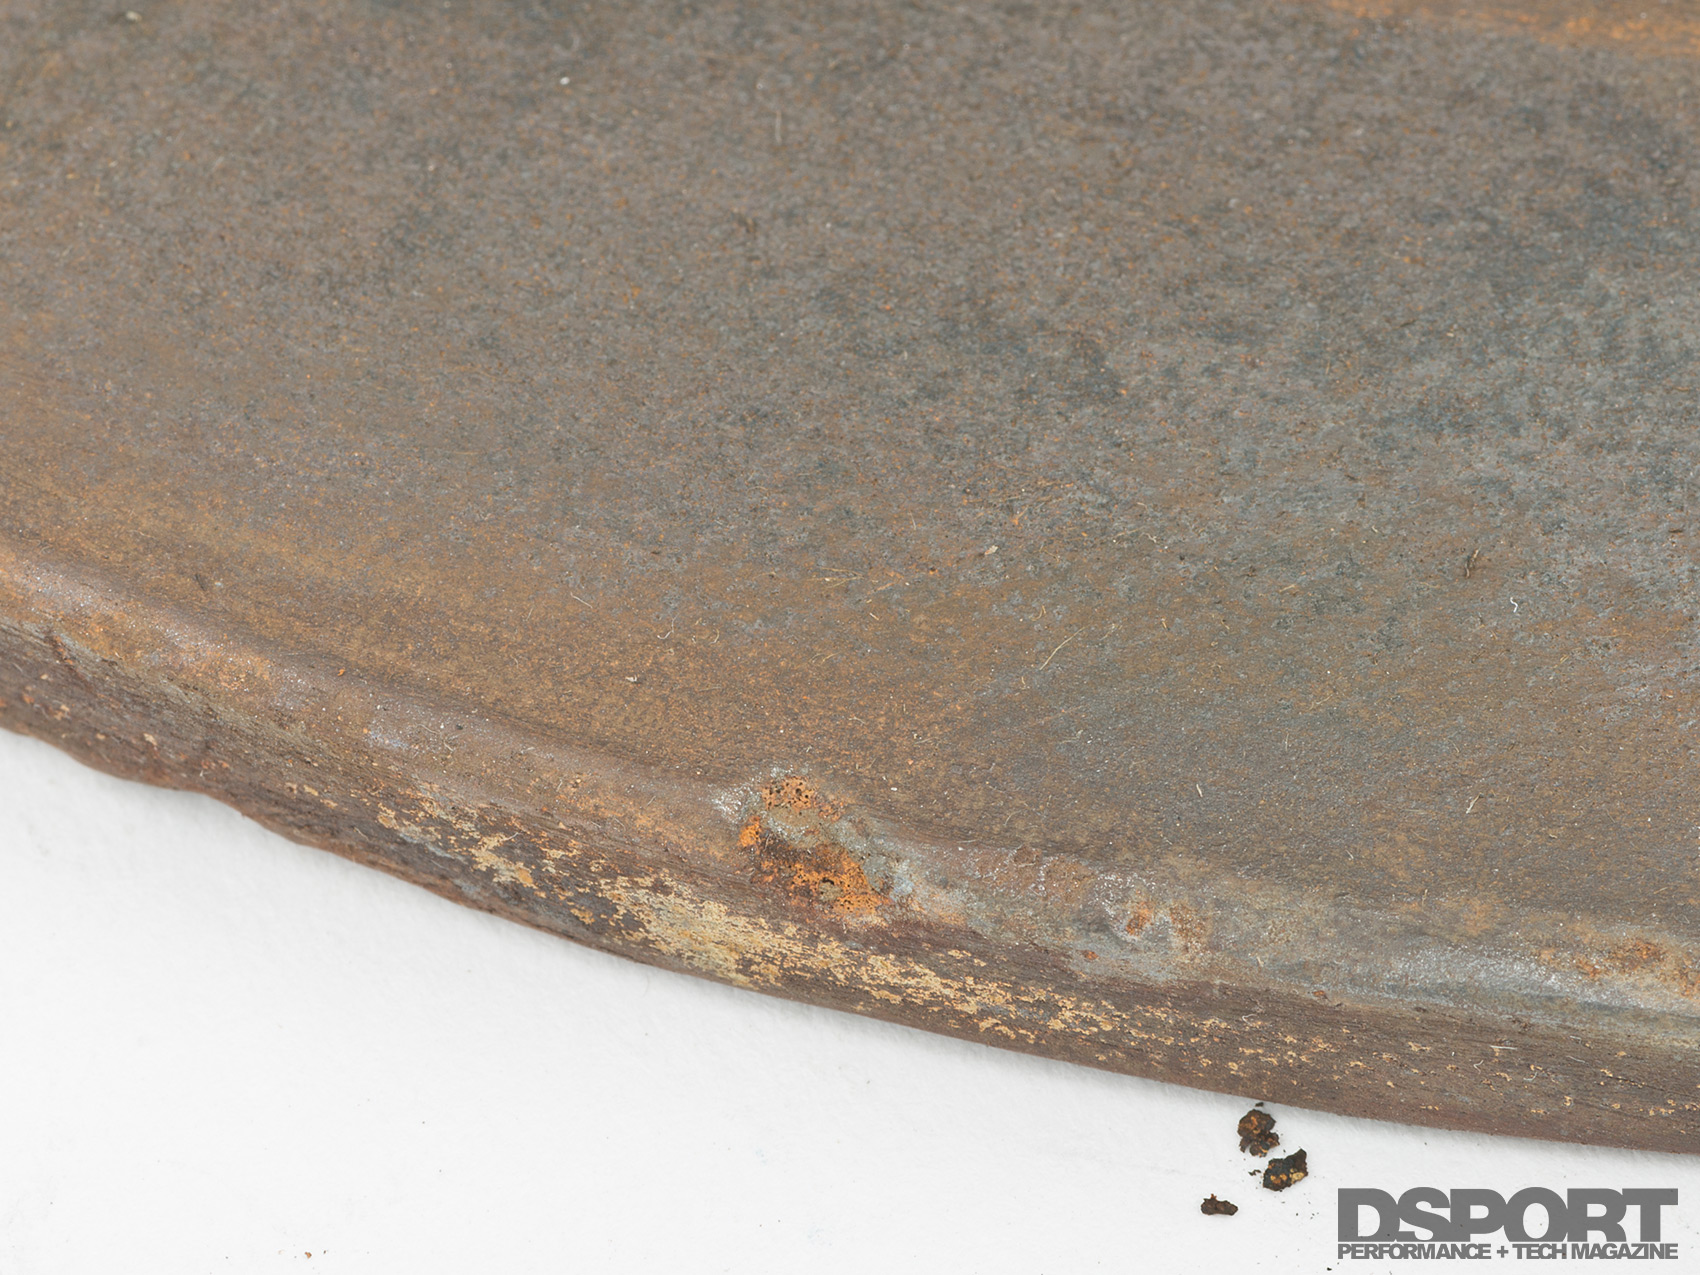 Surface Rust Removal: Eliminate the Iron Oxide, Bring Out the